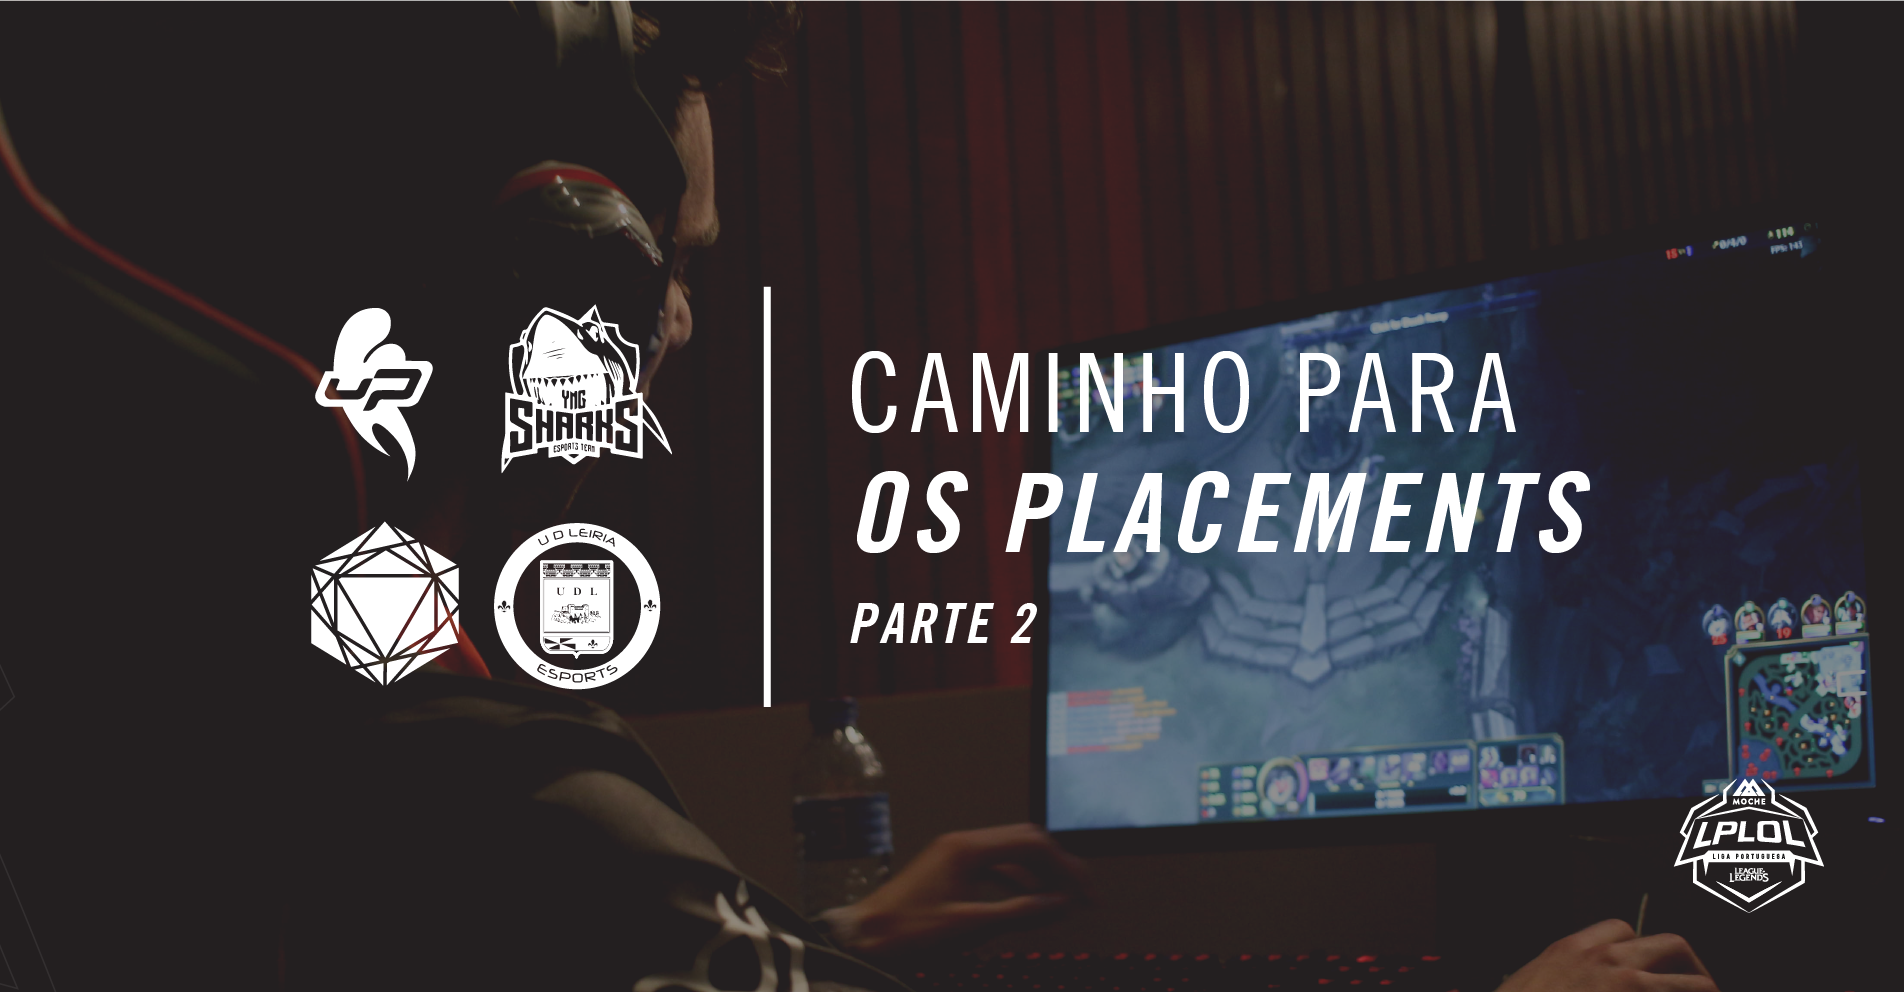 Lplol caminho placements 2